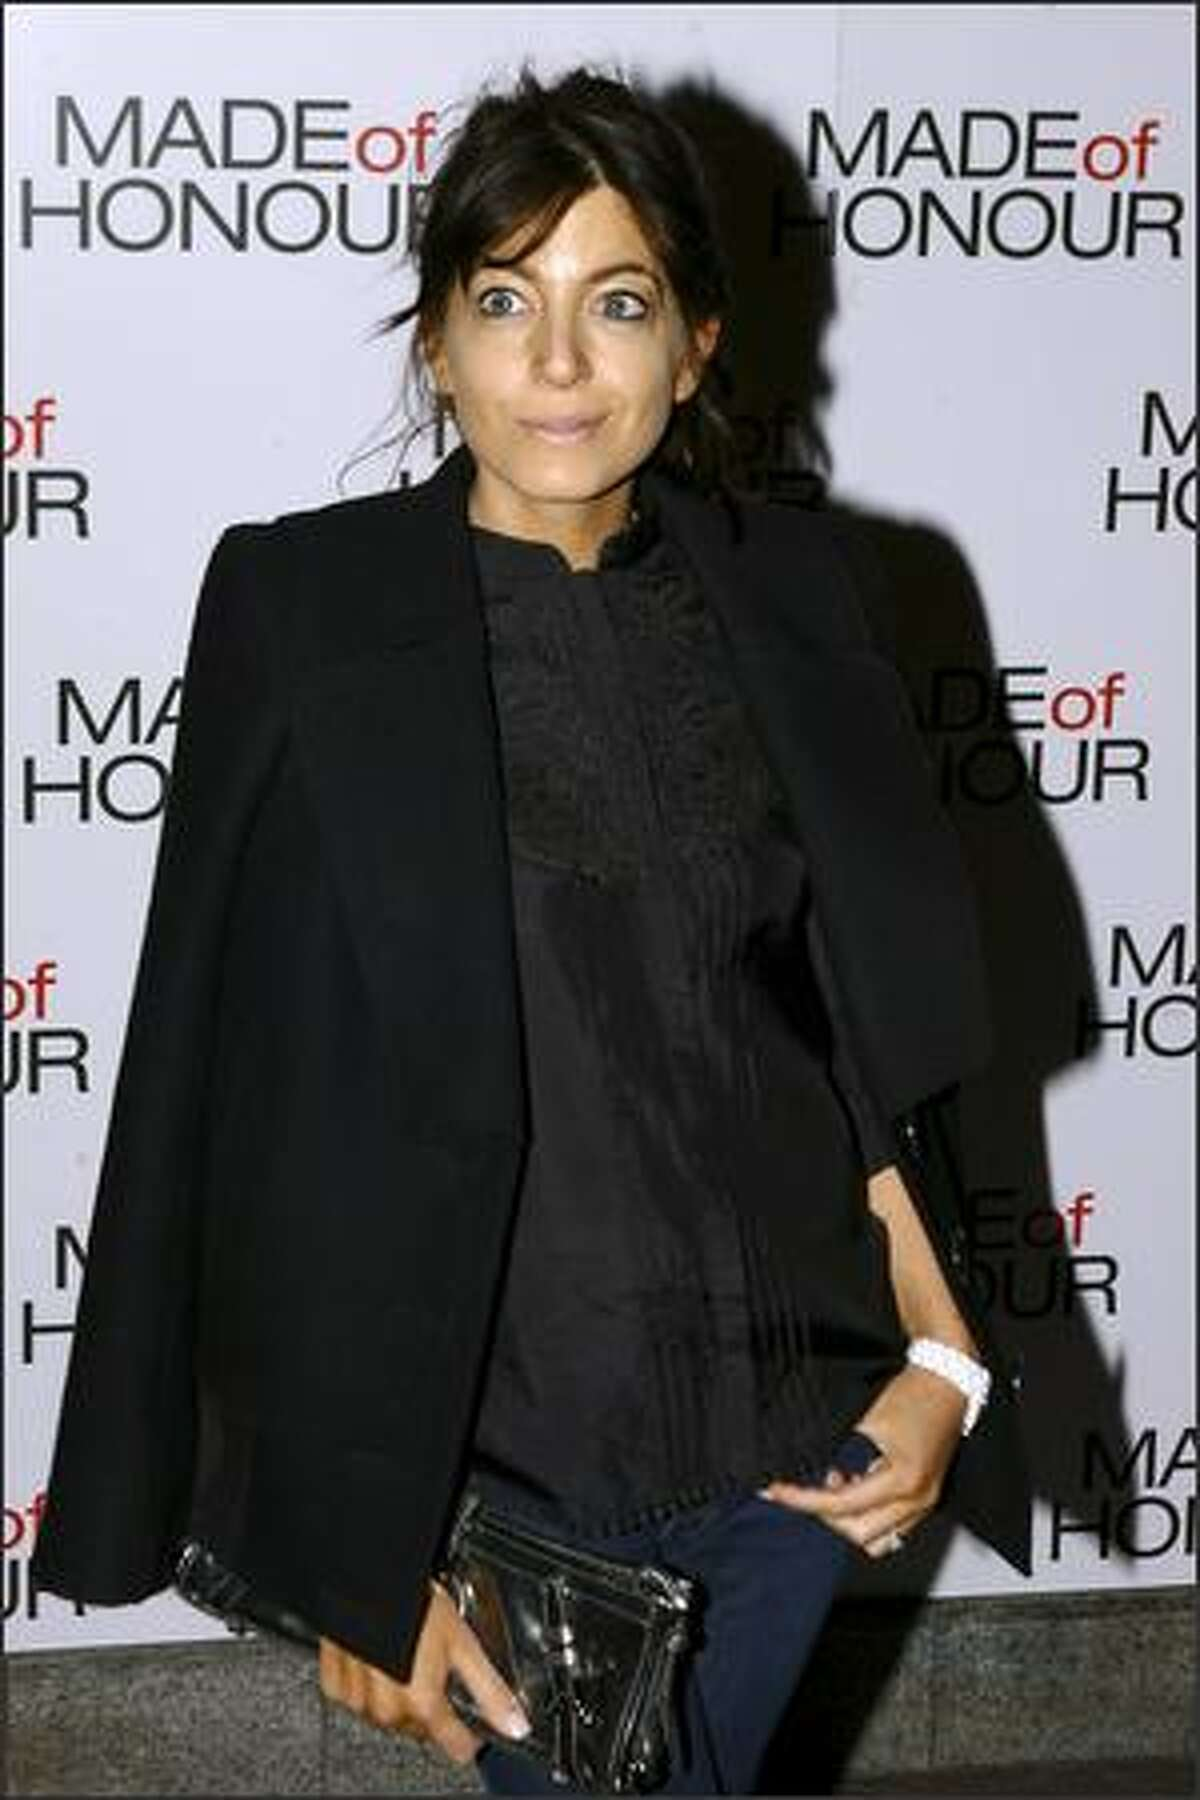 Claudia Winkleman arrives at the celebrity screening of 'Made Of Honour' at the Soho Hotel on Monday in London, England.